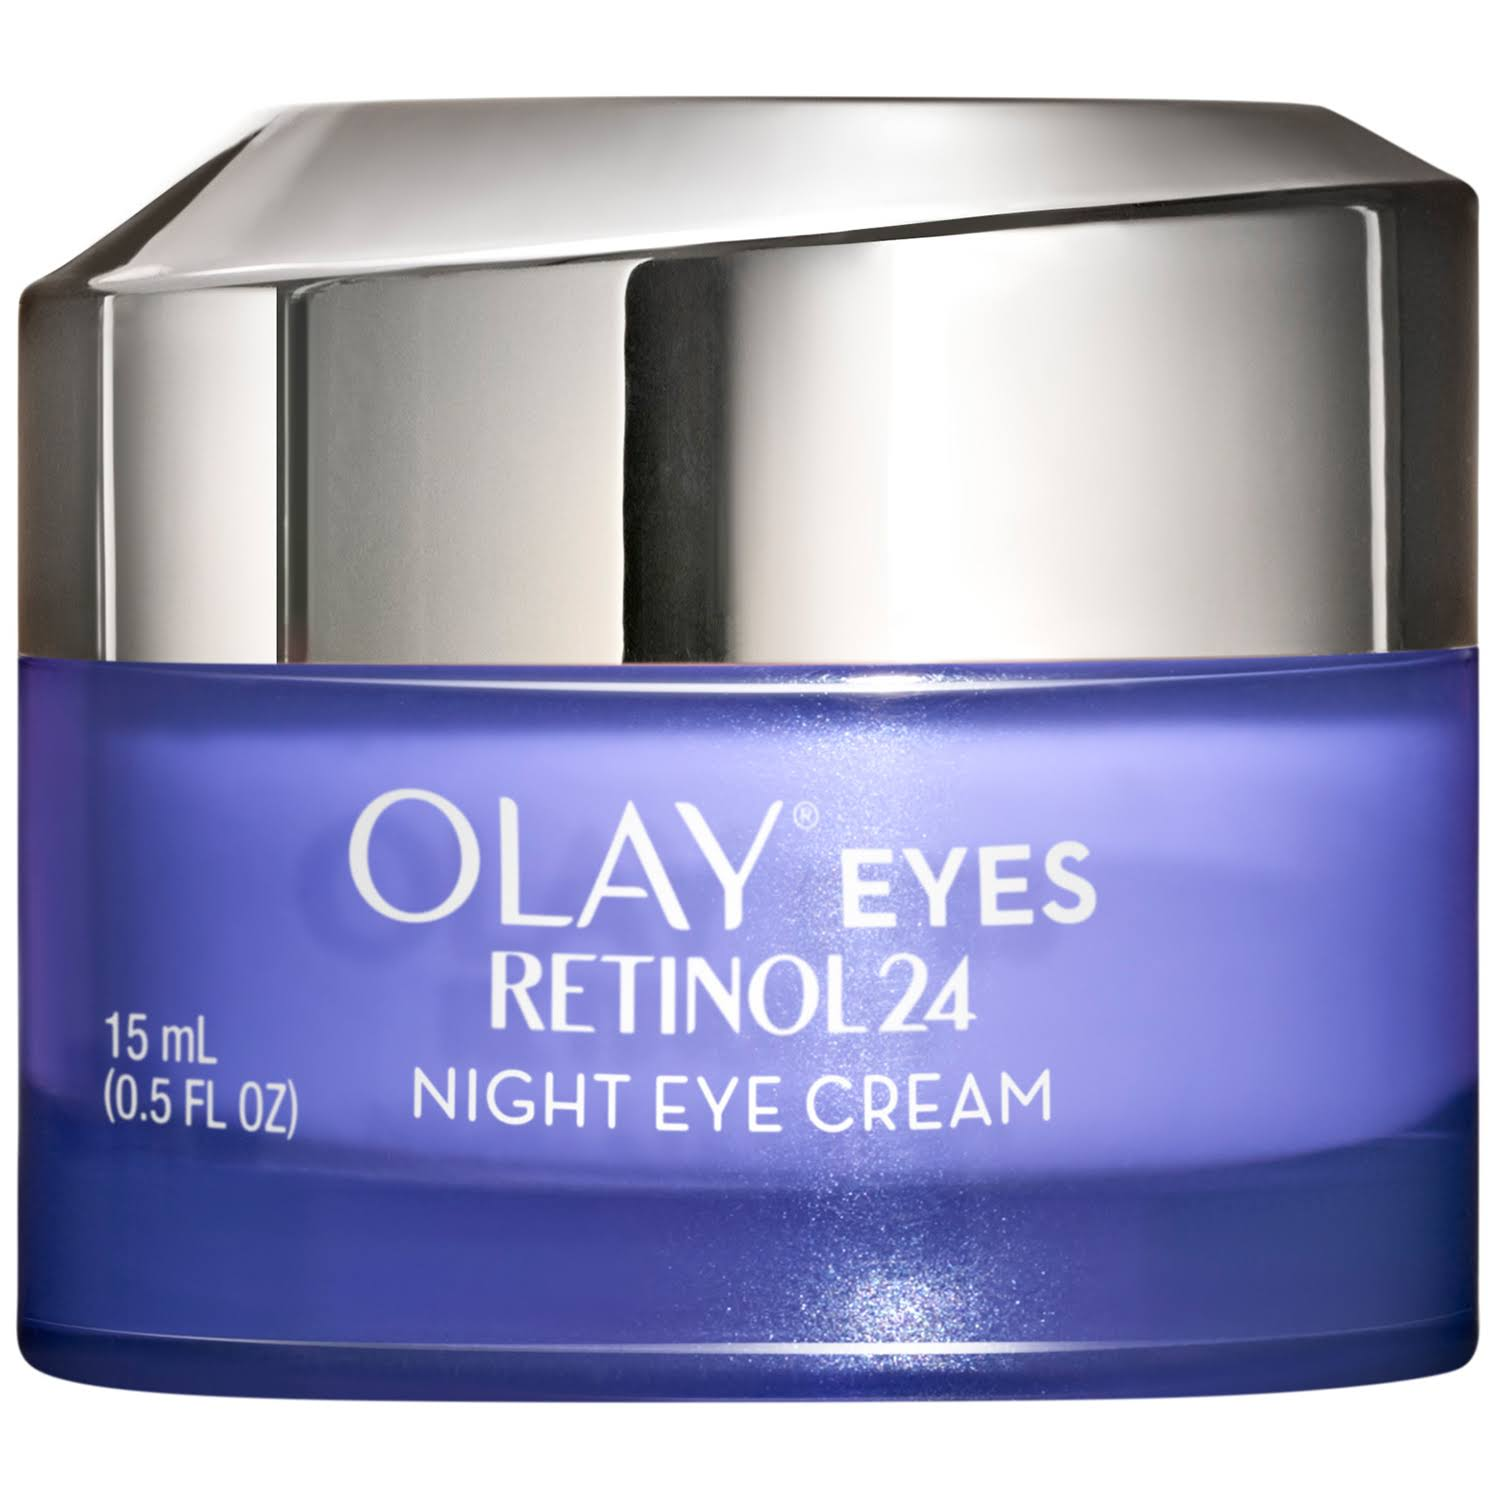 Olay Eyes Retinol 24 Night Eye Cream - 0.5oz